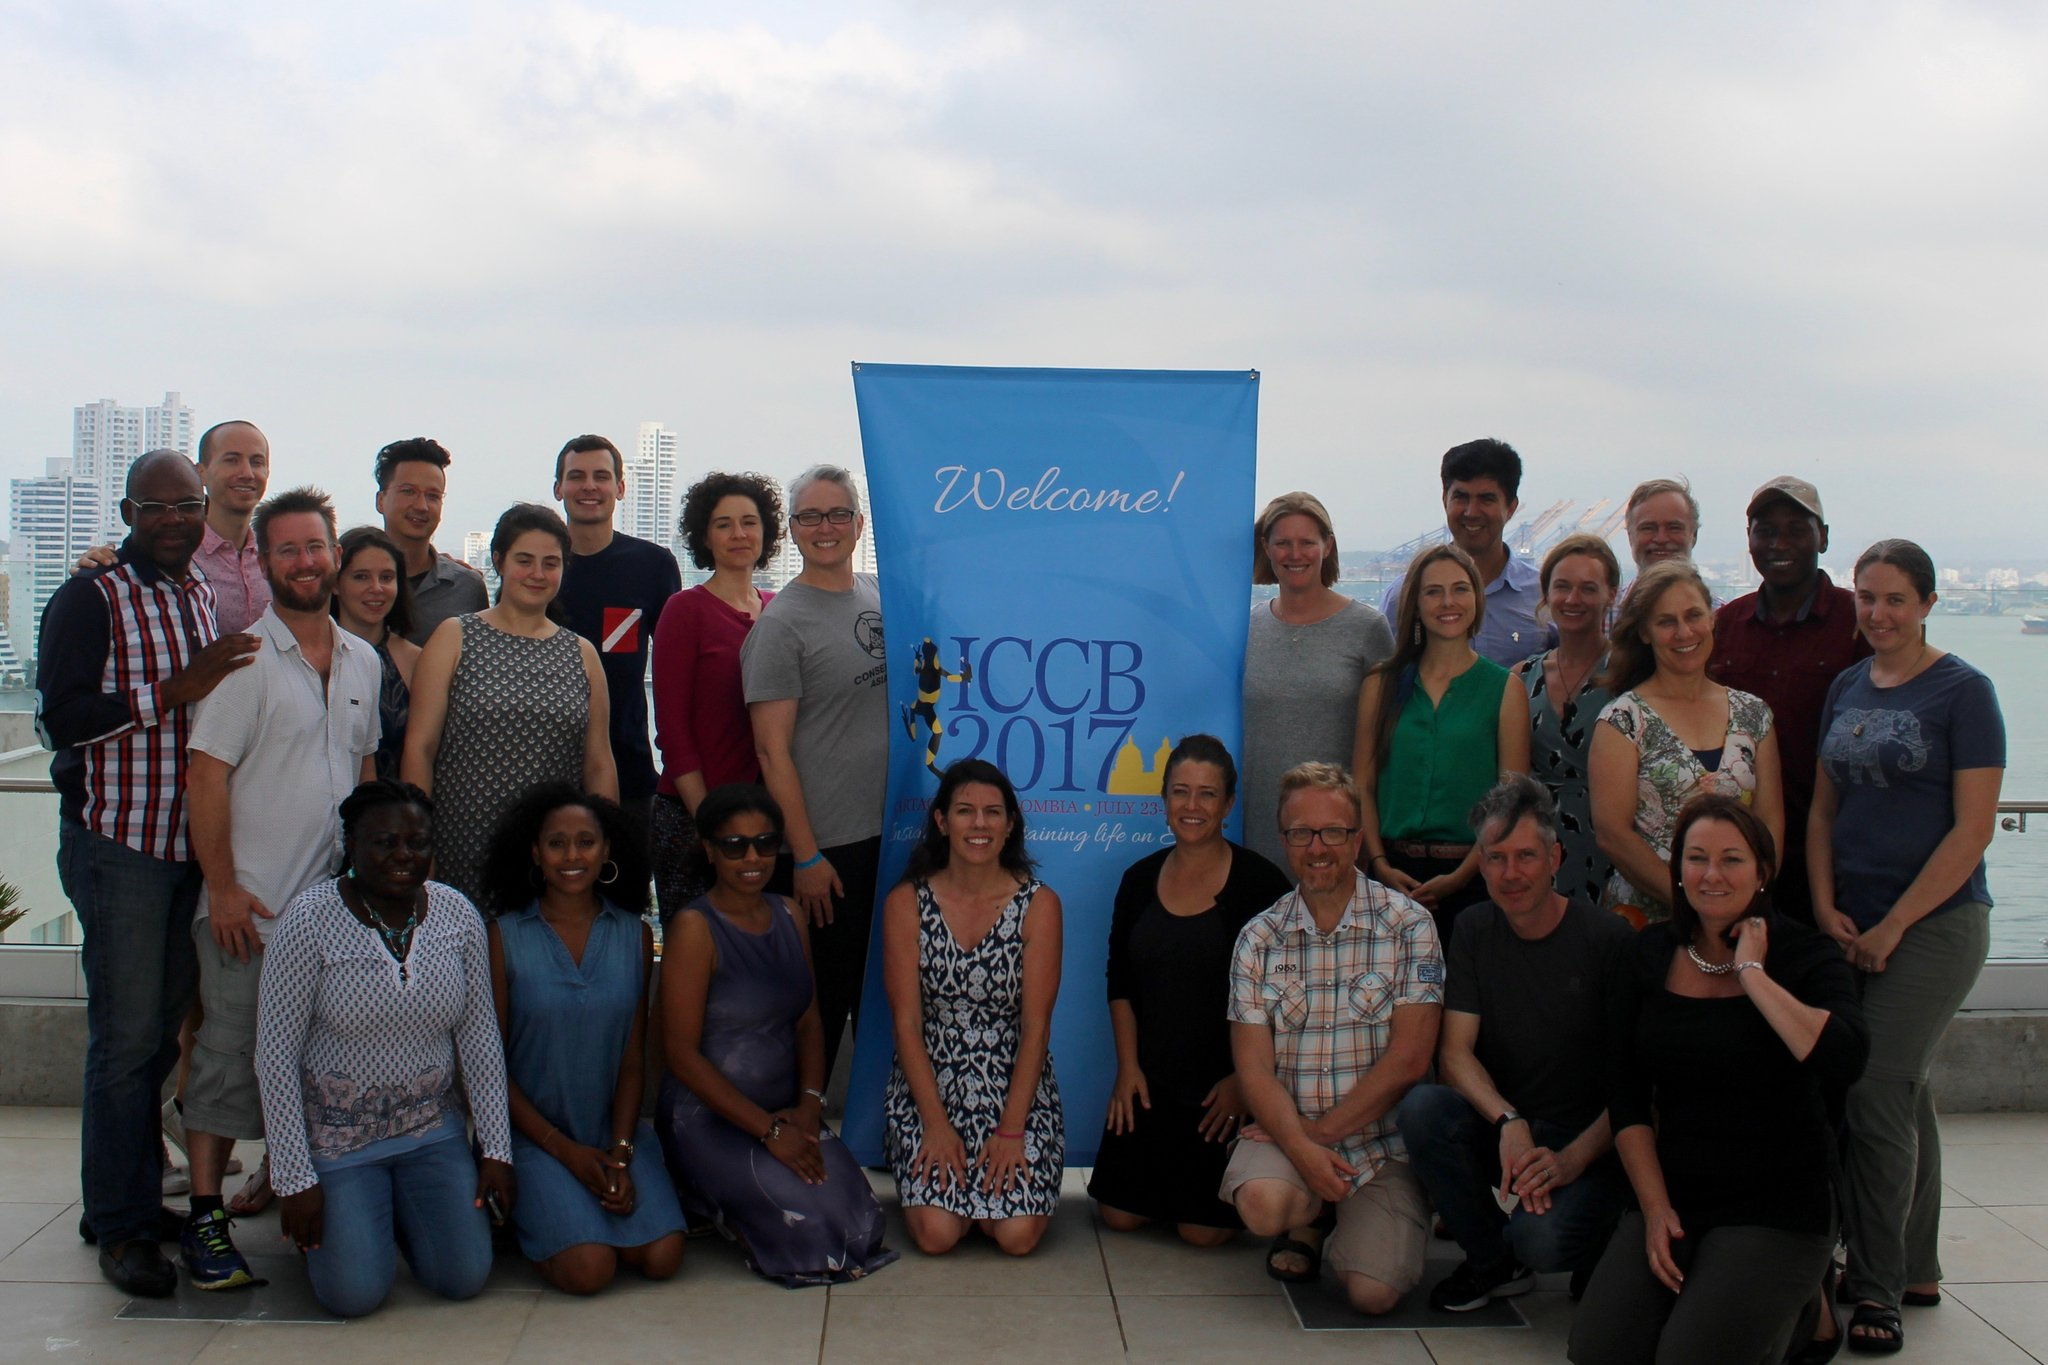 @Society4ConBio , Board and staff joining forces for the future after #ICCB2017 . Great, really great future, SCB first, it will be great! https://t.co/Yn8Q3WxeFl